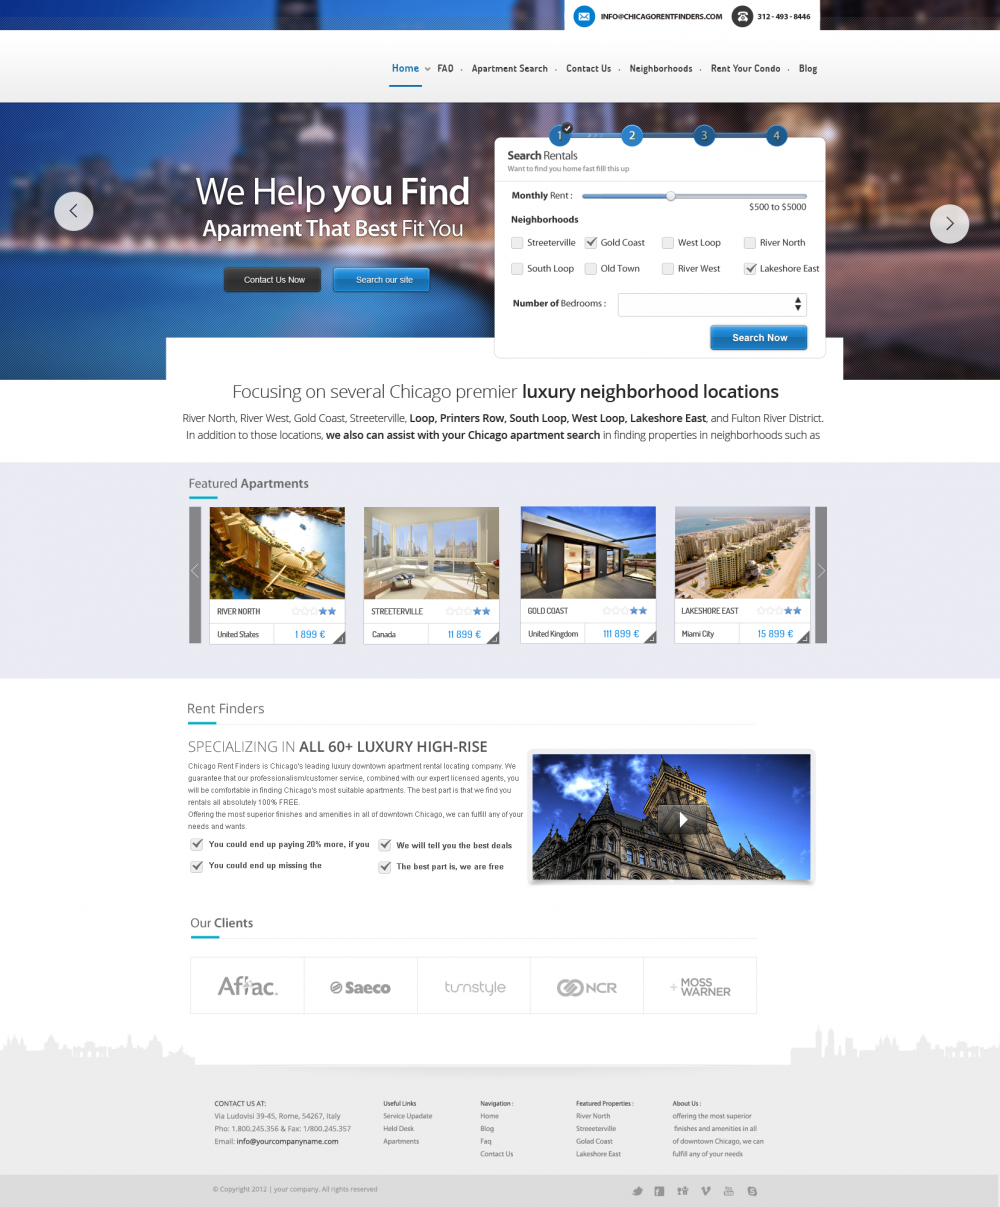 Travel booking website design template psd download for Website layout design software free download